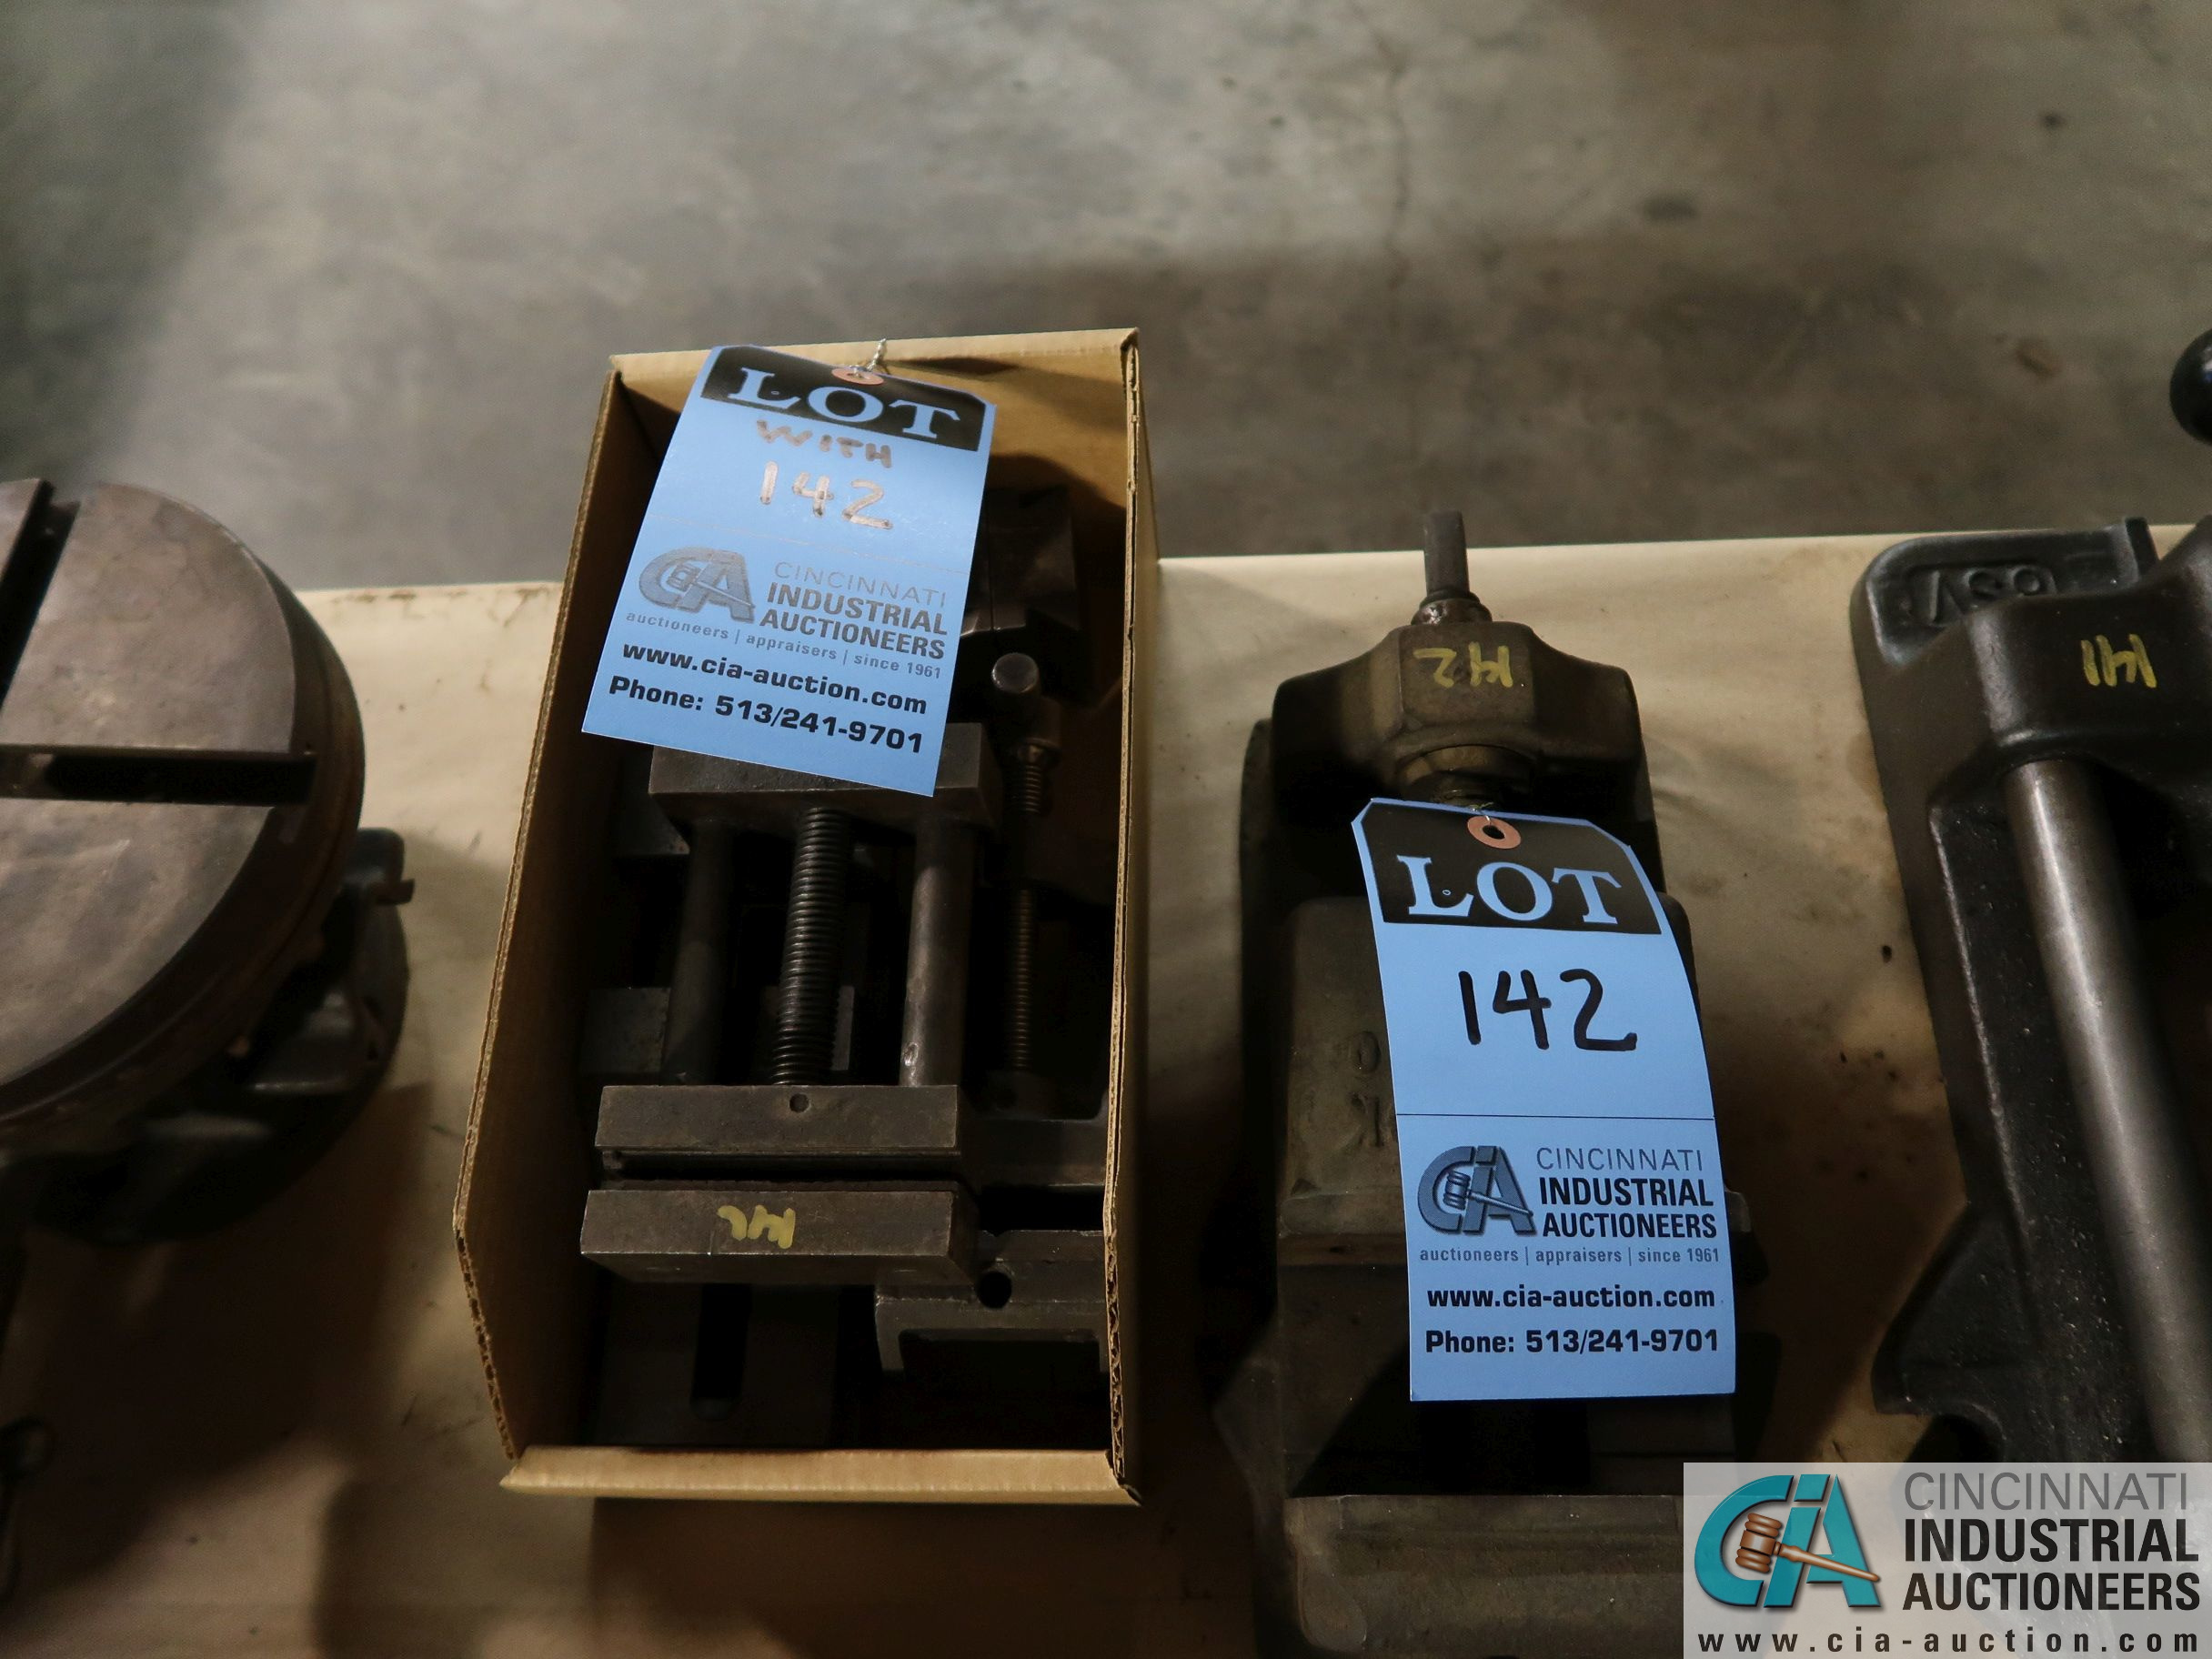 "(LOT) 2-1/2"" - 3-1/2"" PRECISION VISES (3 TOTAL)"